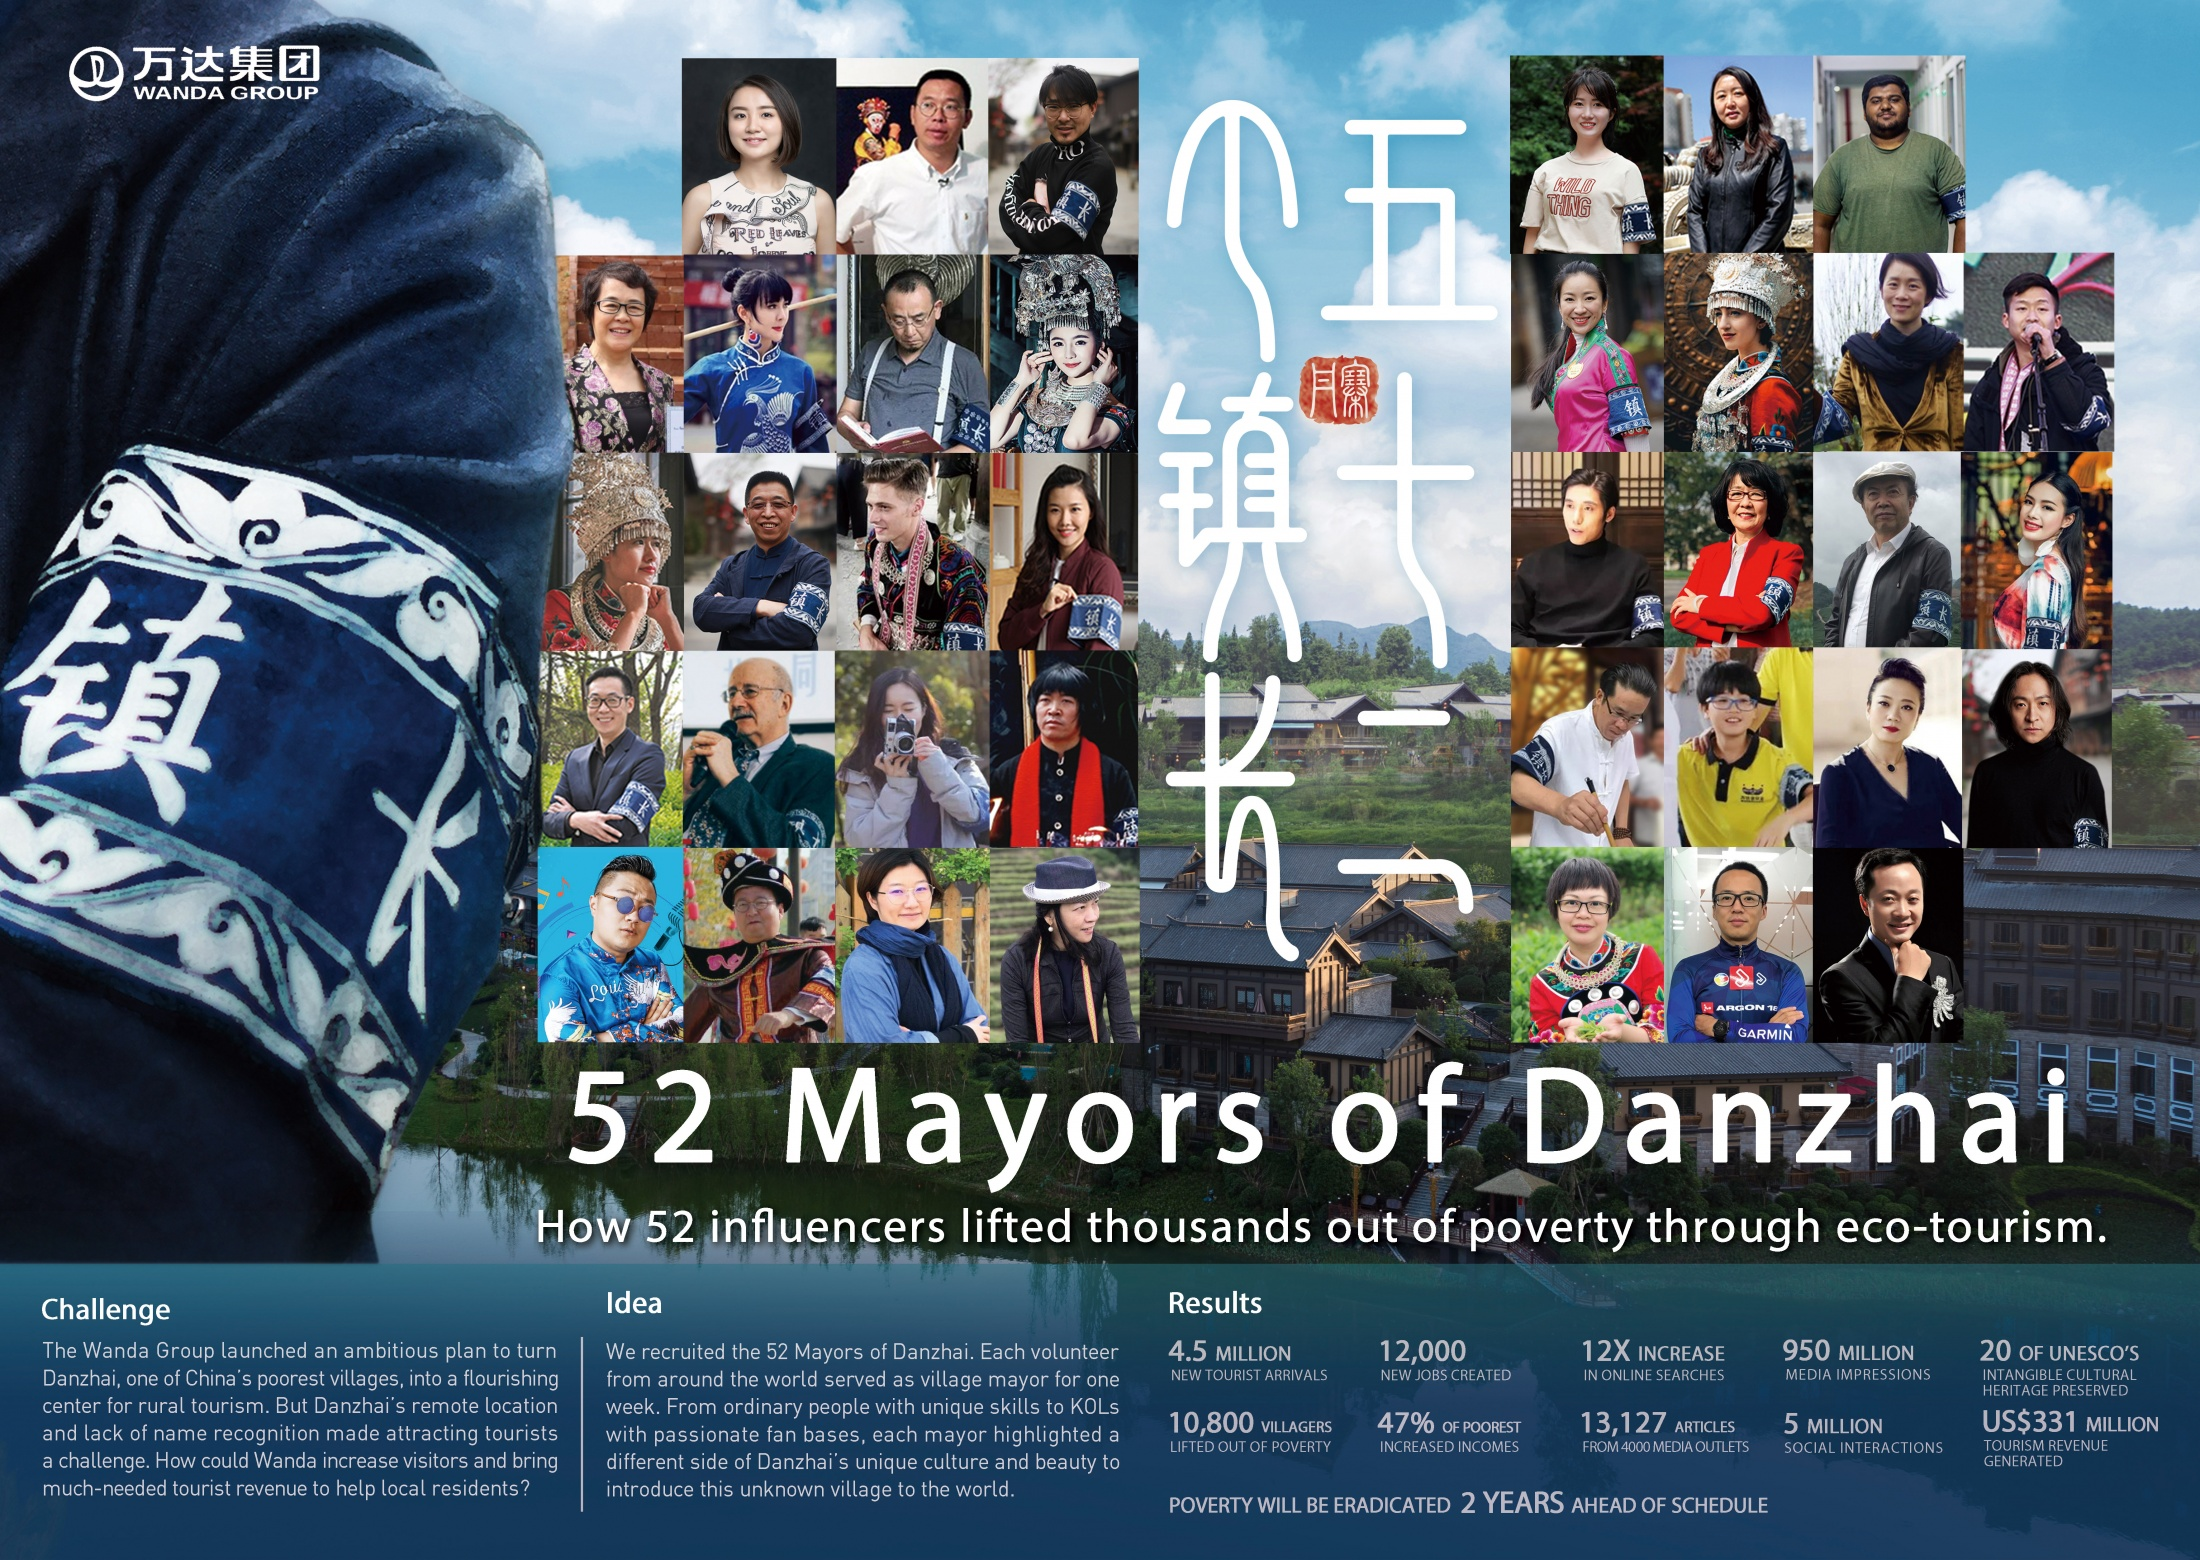 Thumbnail for 52 Mayors of Danzhai